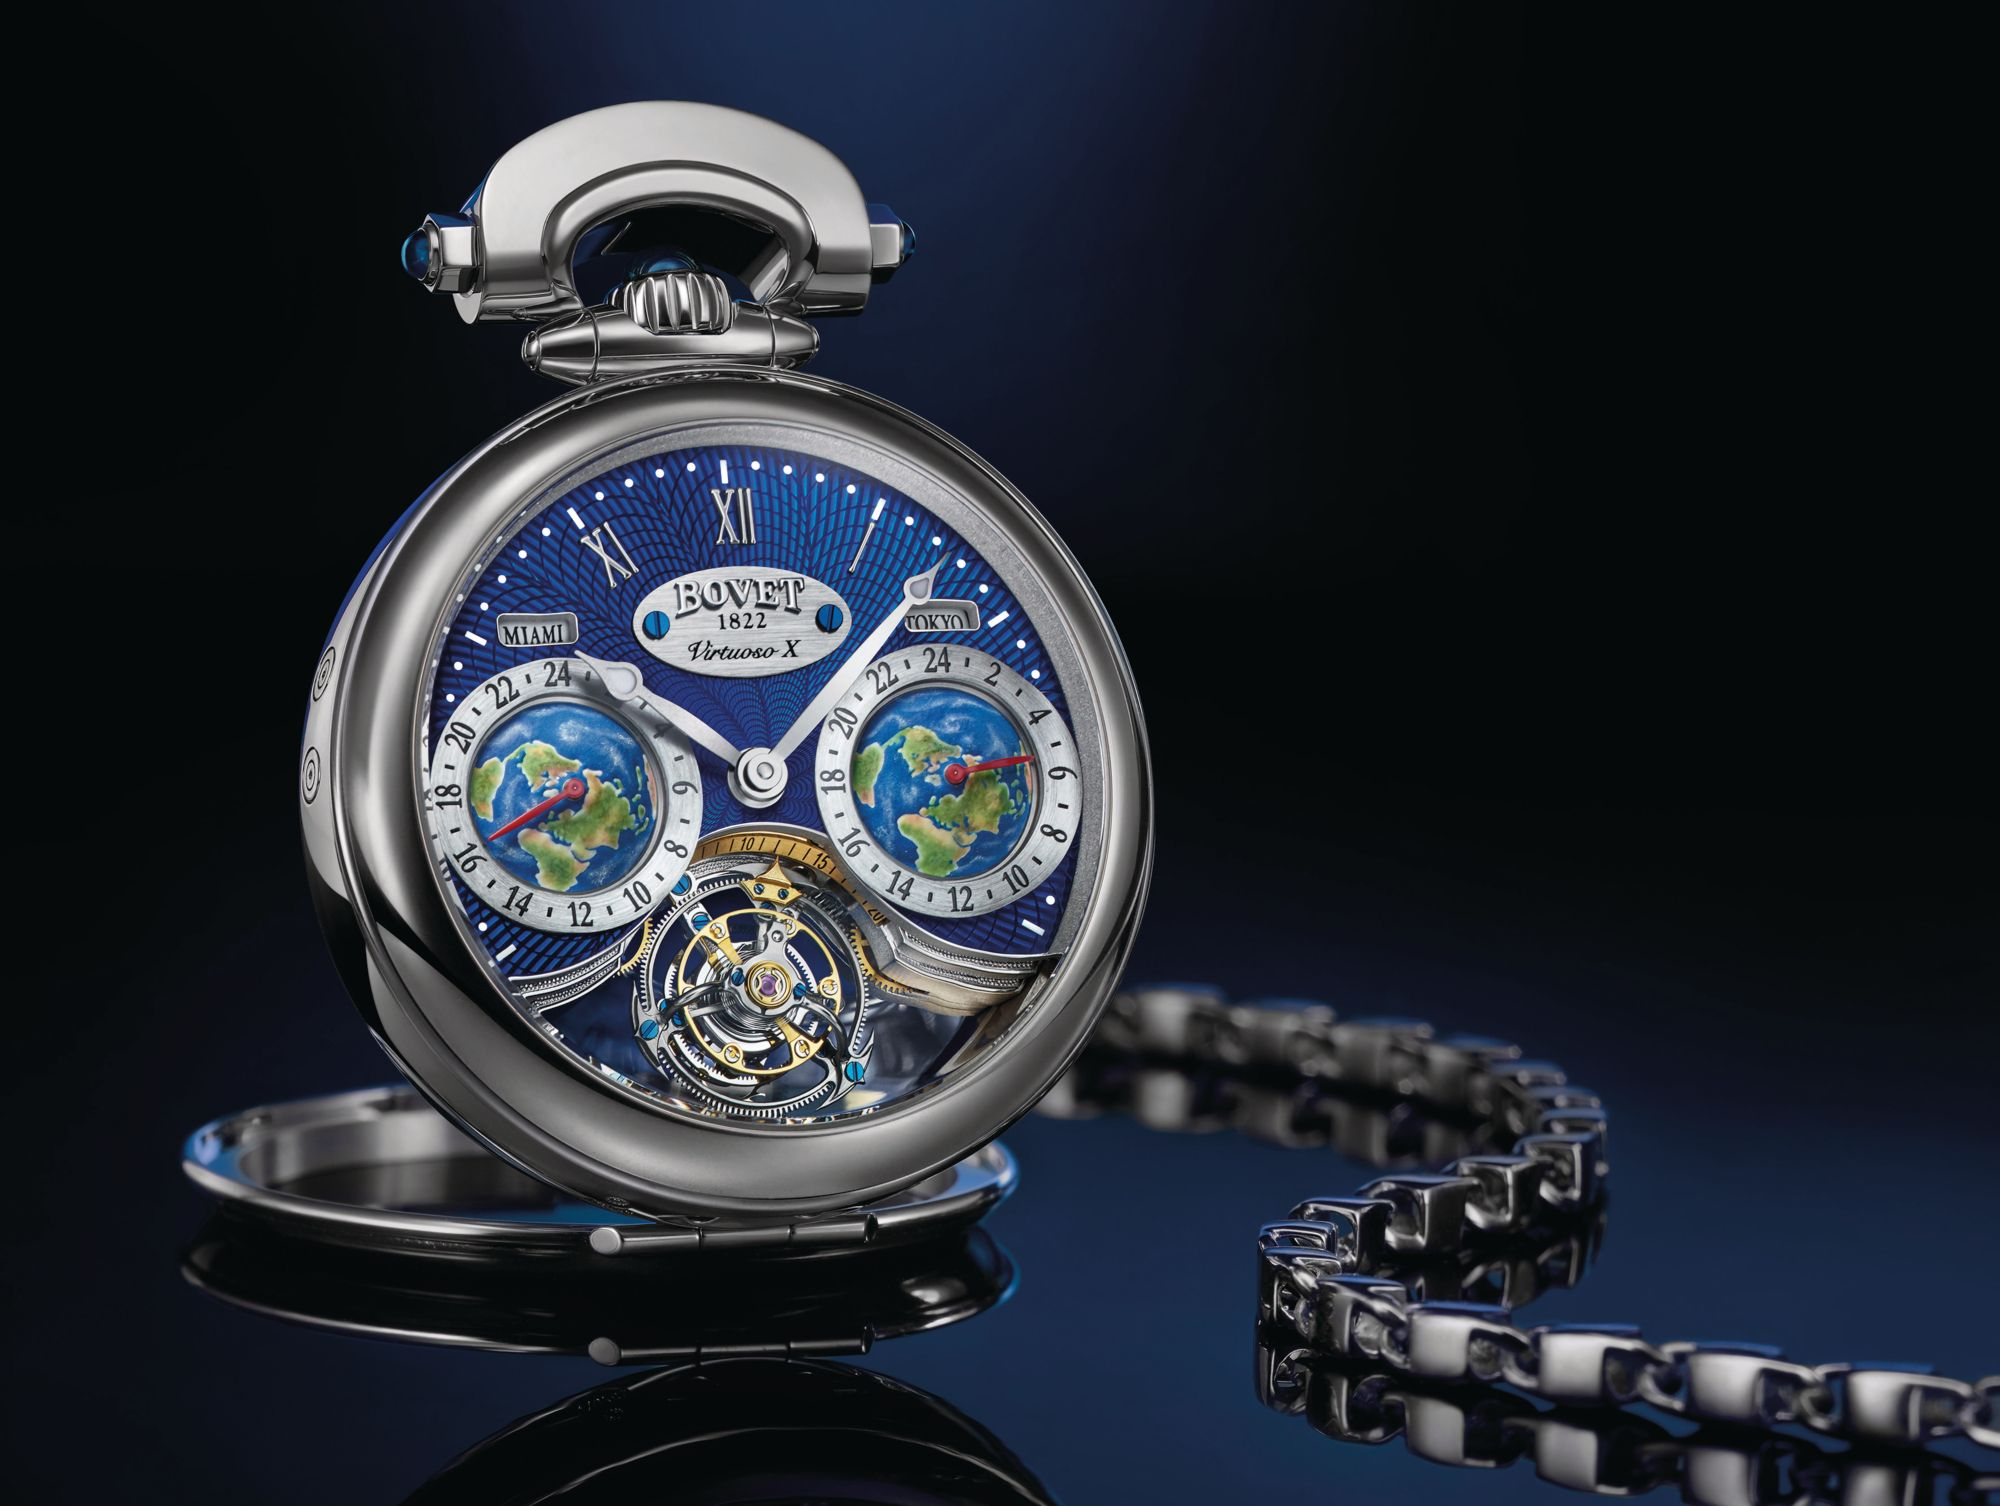 Virtuoso X by Bovet 1822